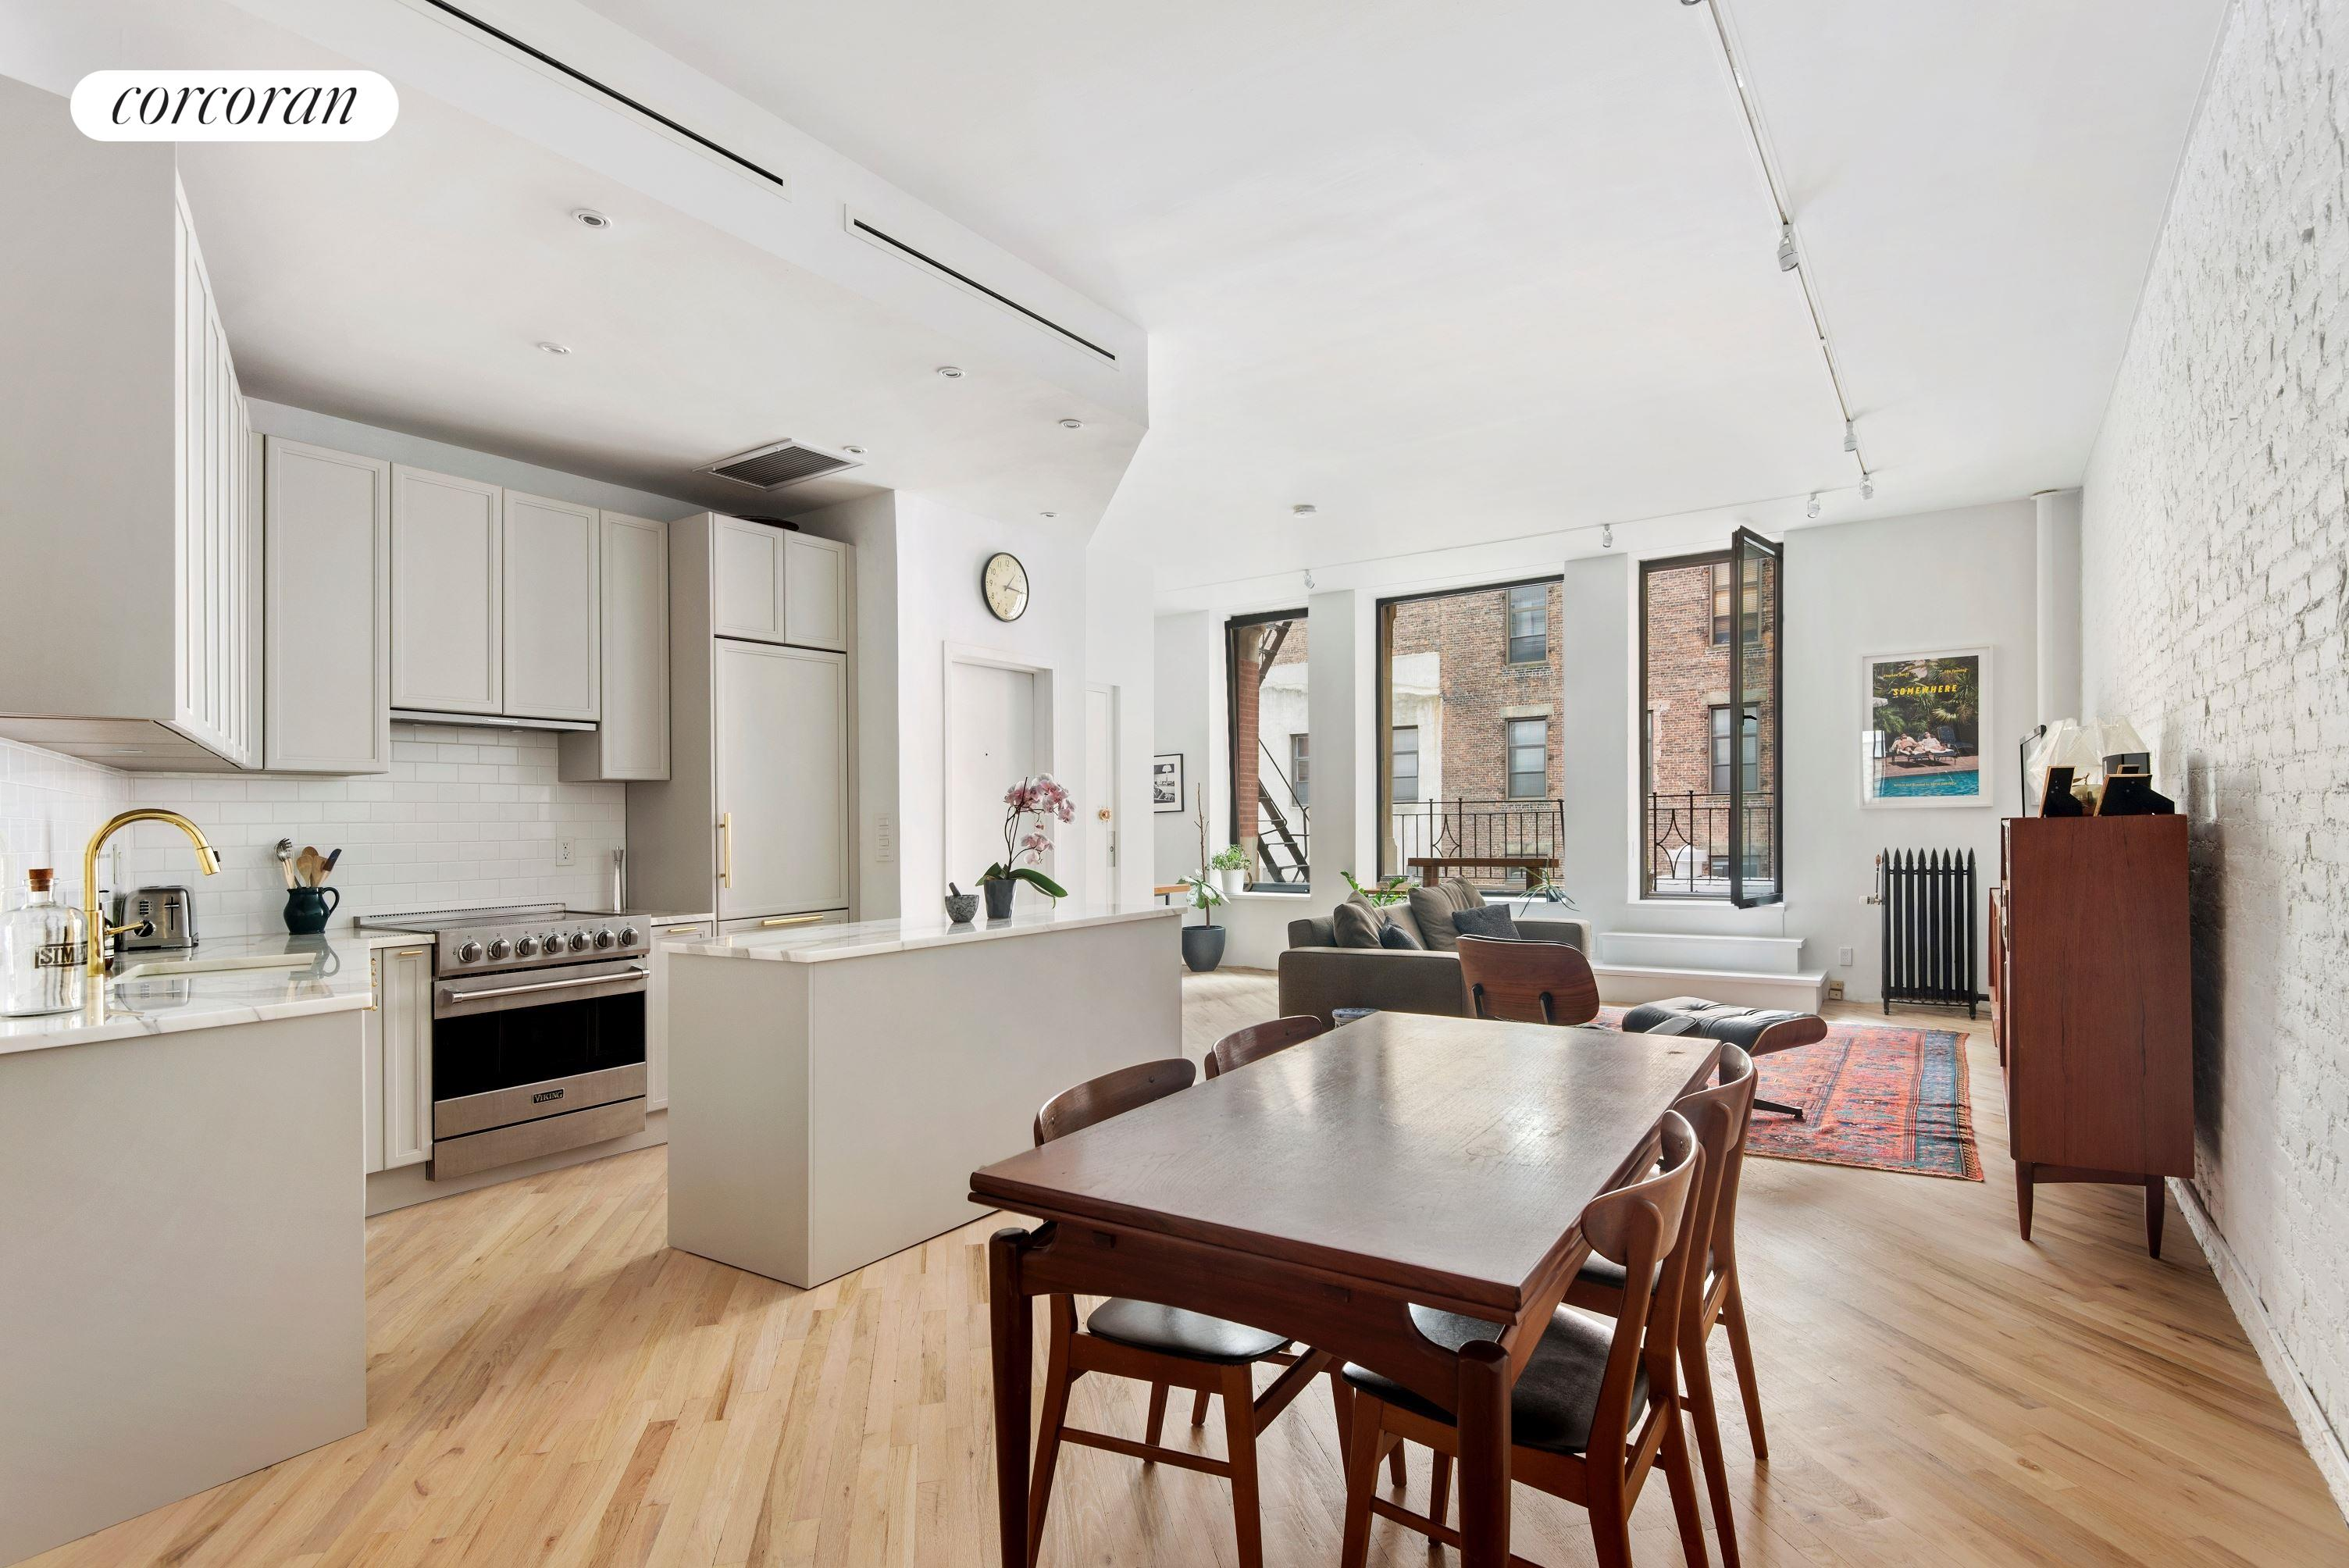 133 MERCER ST, Floor 3, Other Listing Photo